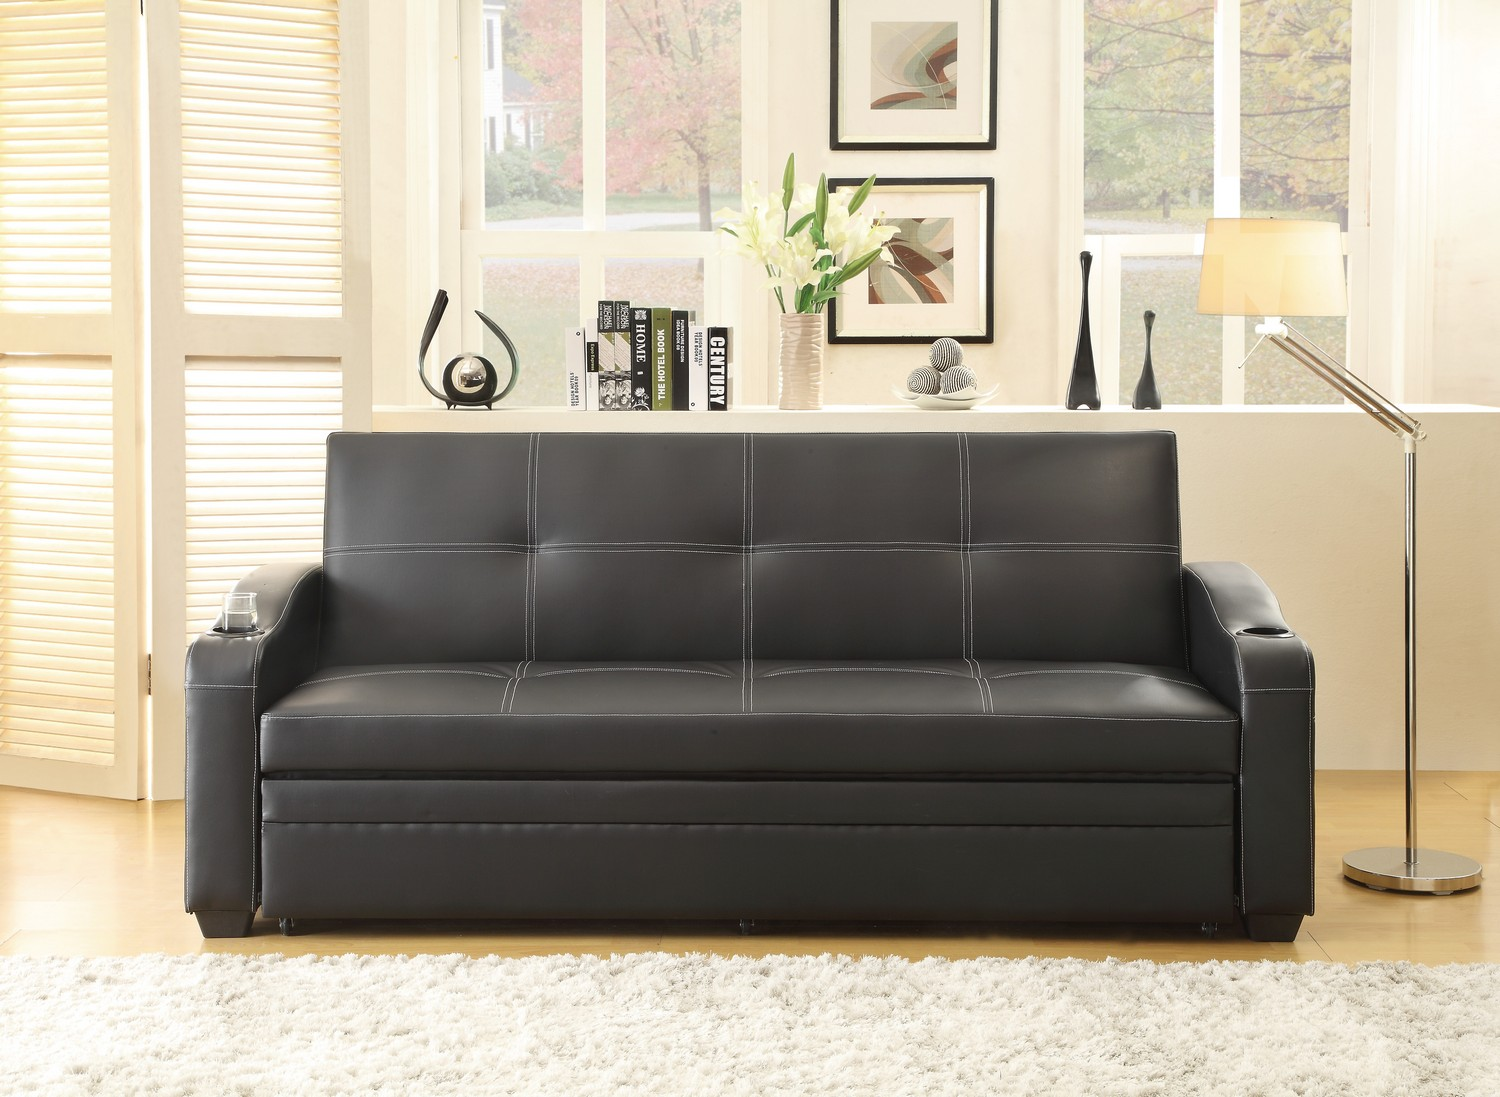 Homelegance Marcelo Elegant Lounger - Sofa Bed - Black